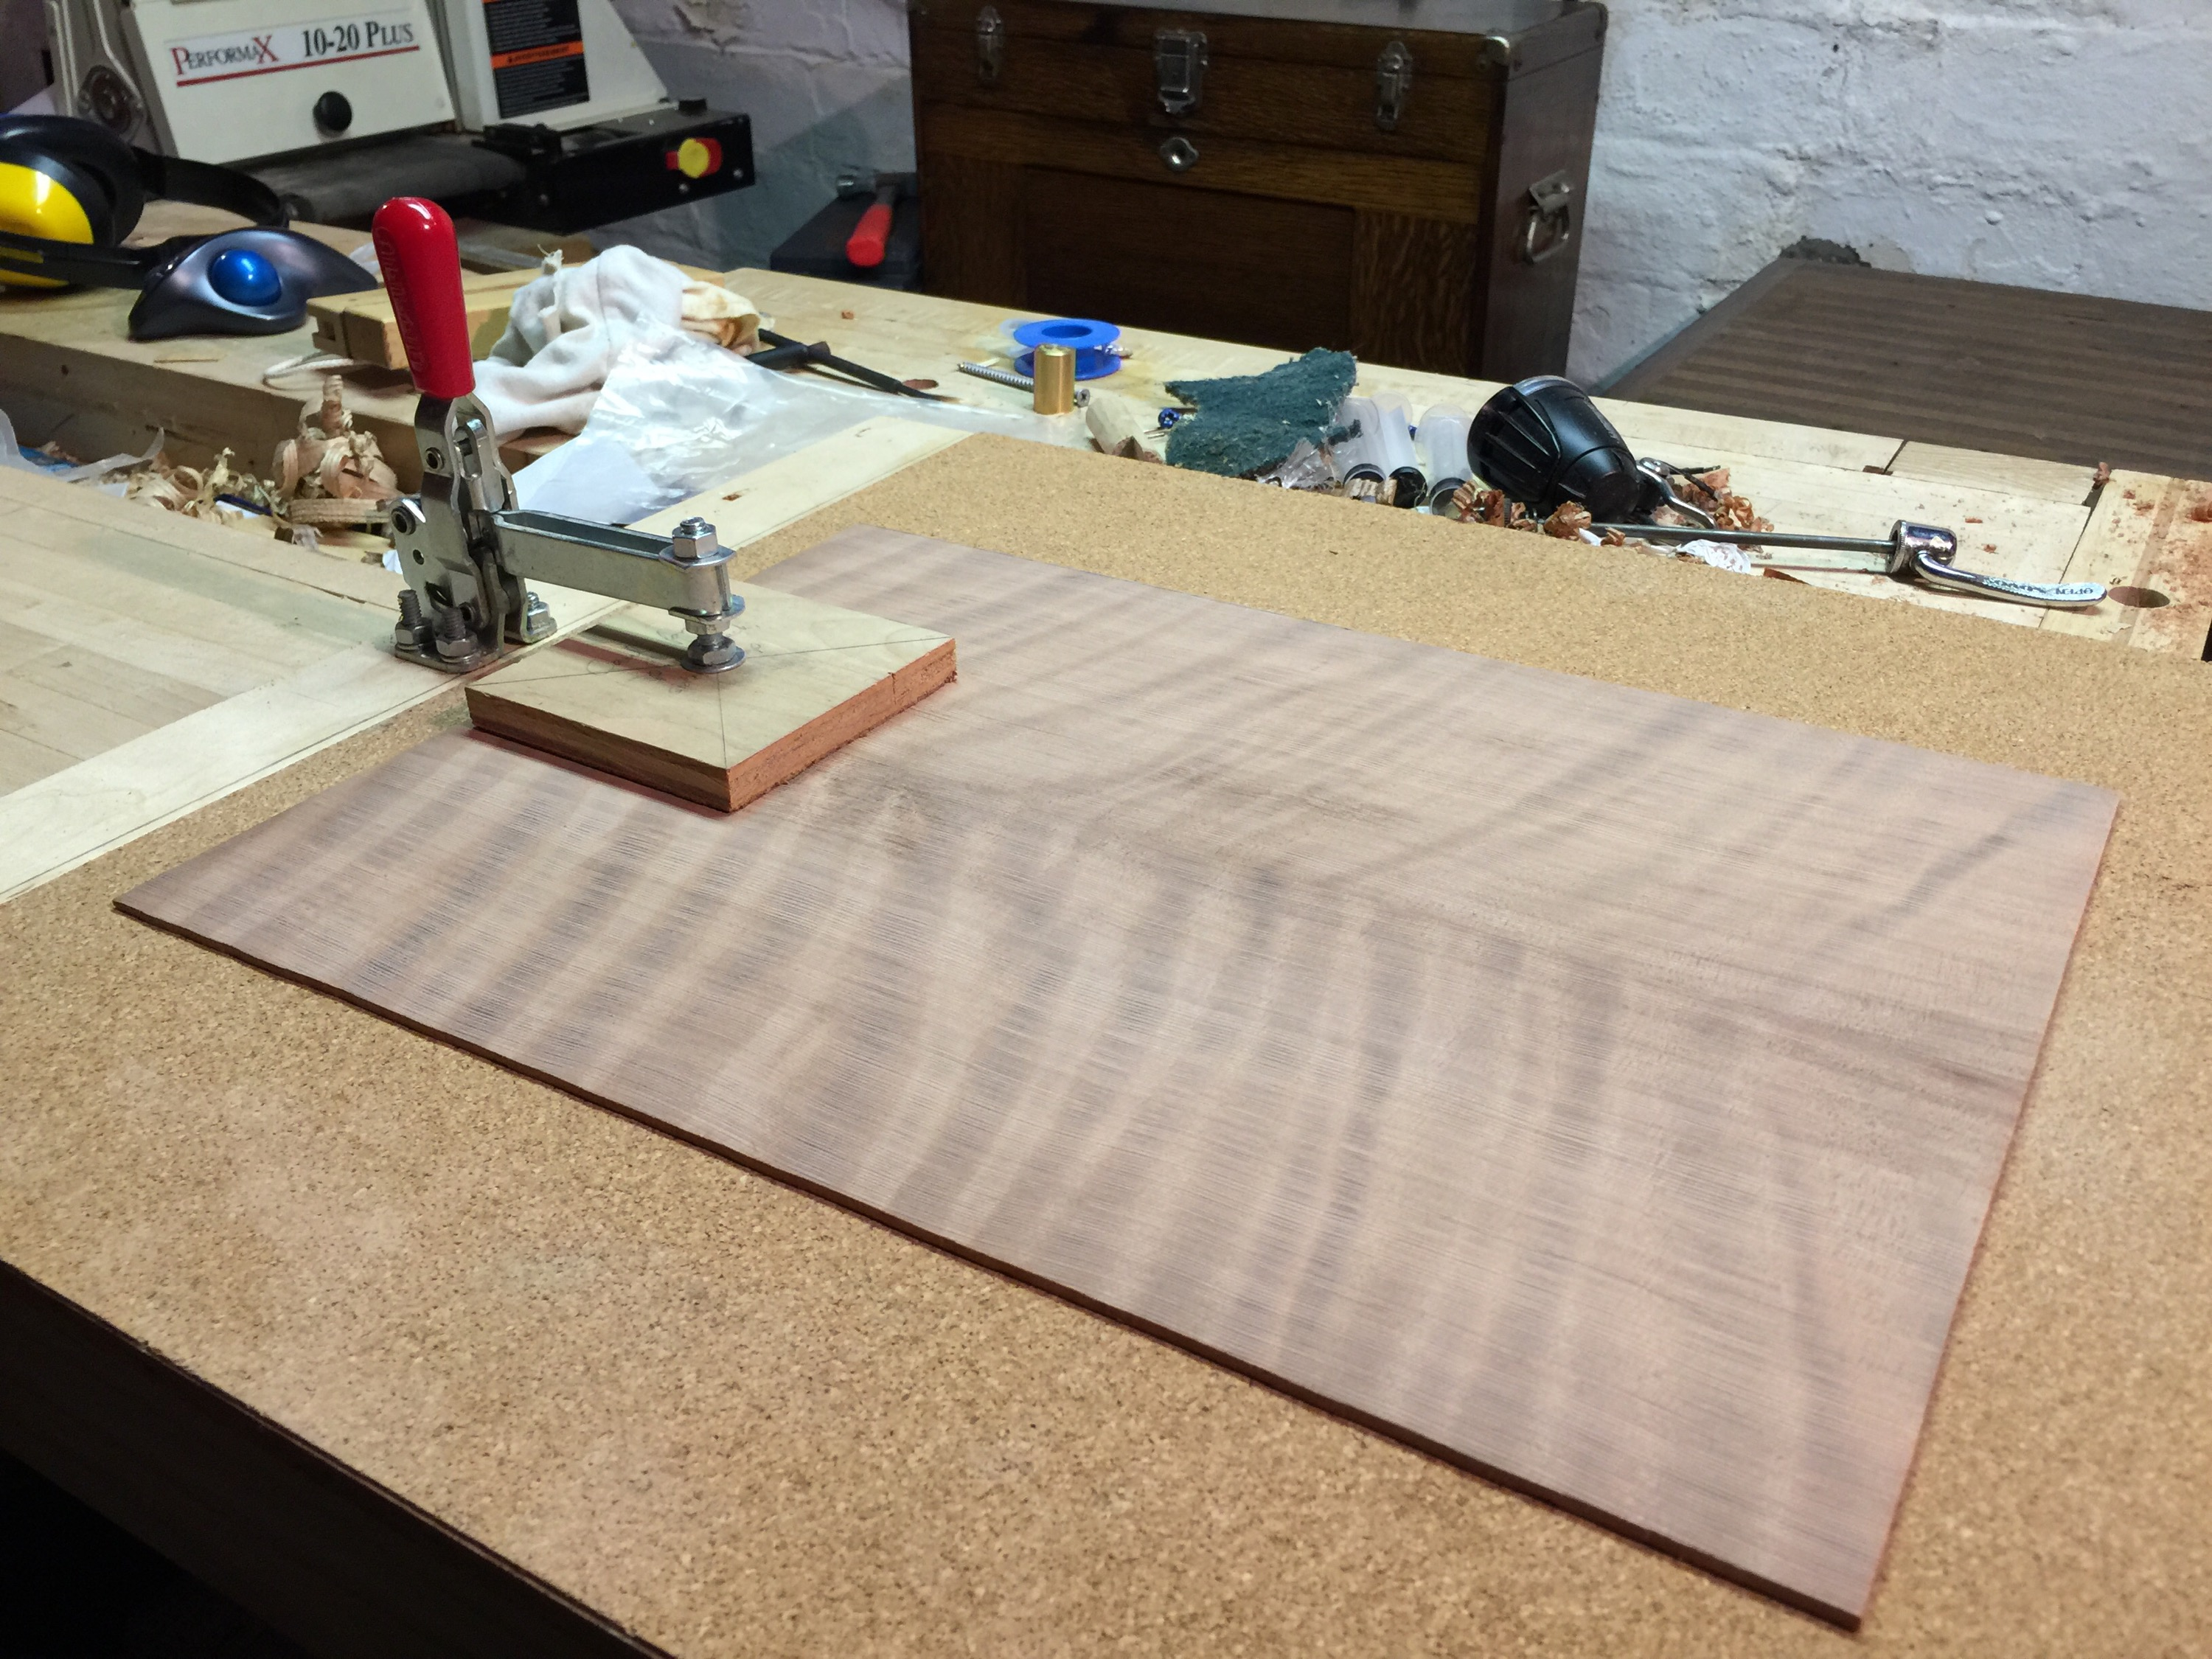 Curly Redwood Top -- jointed and sanded to thickness. This is the face of the future tenor guitar.